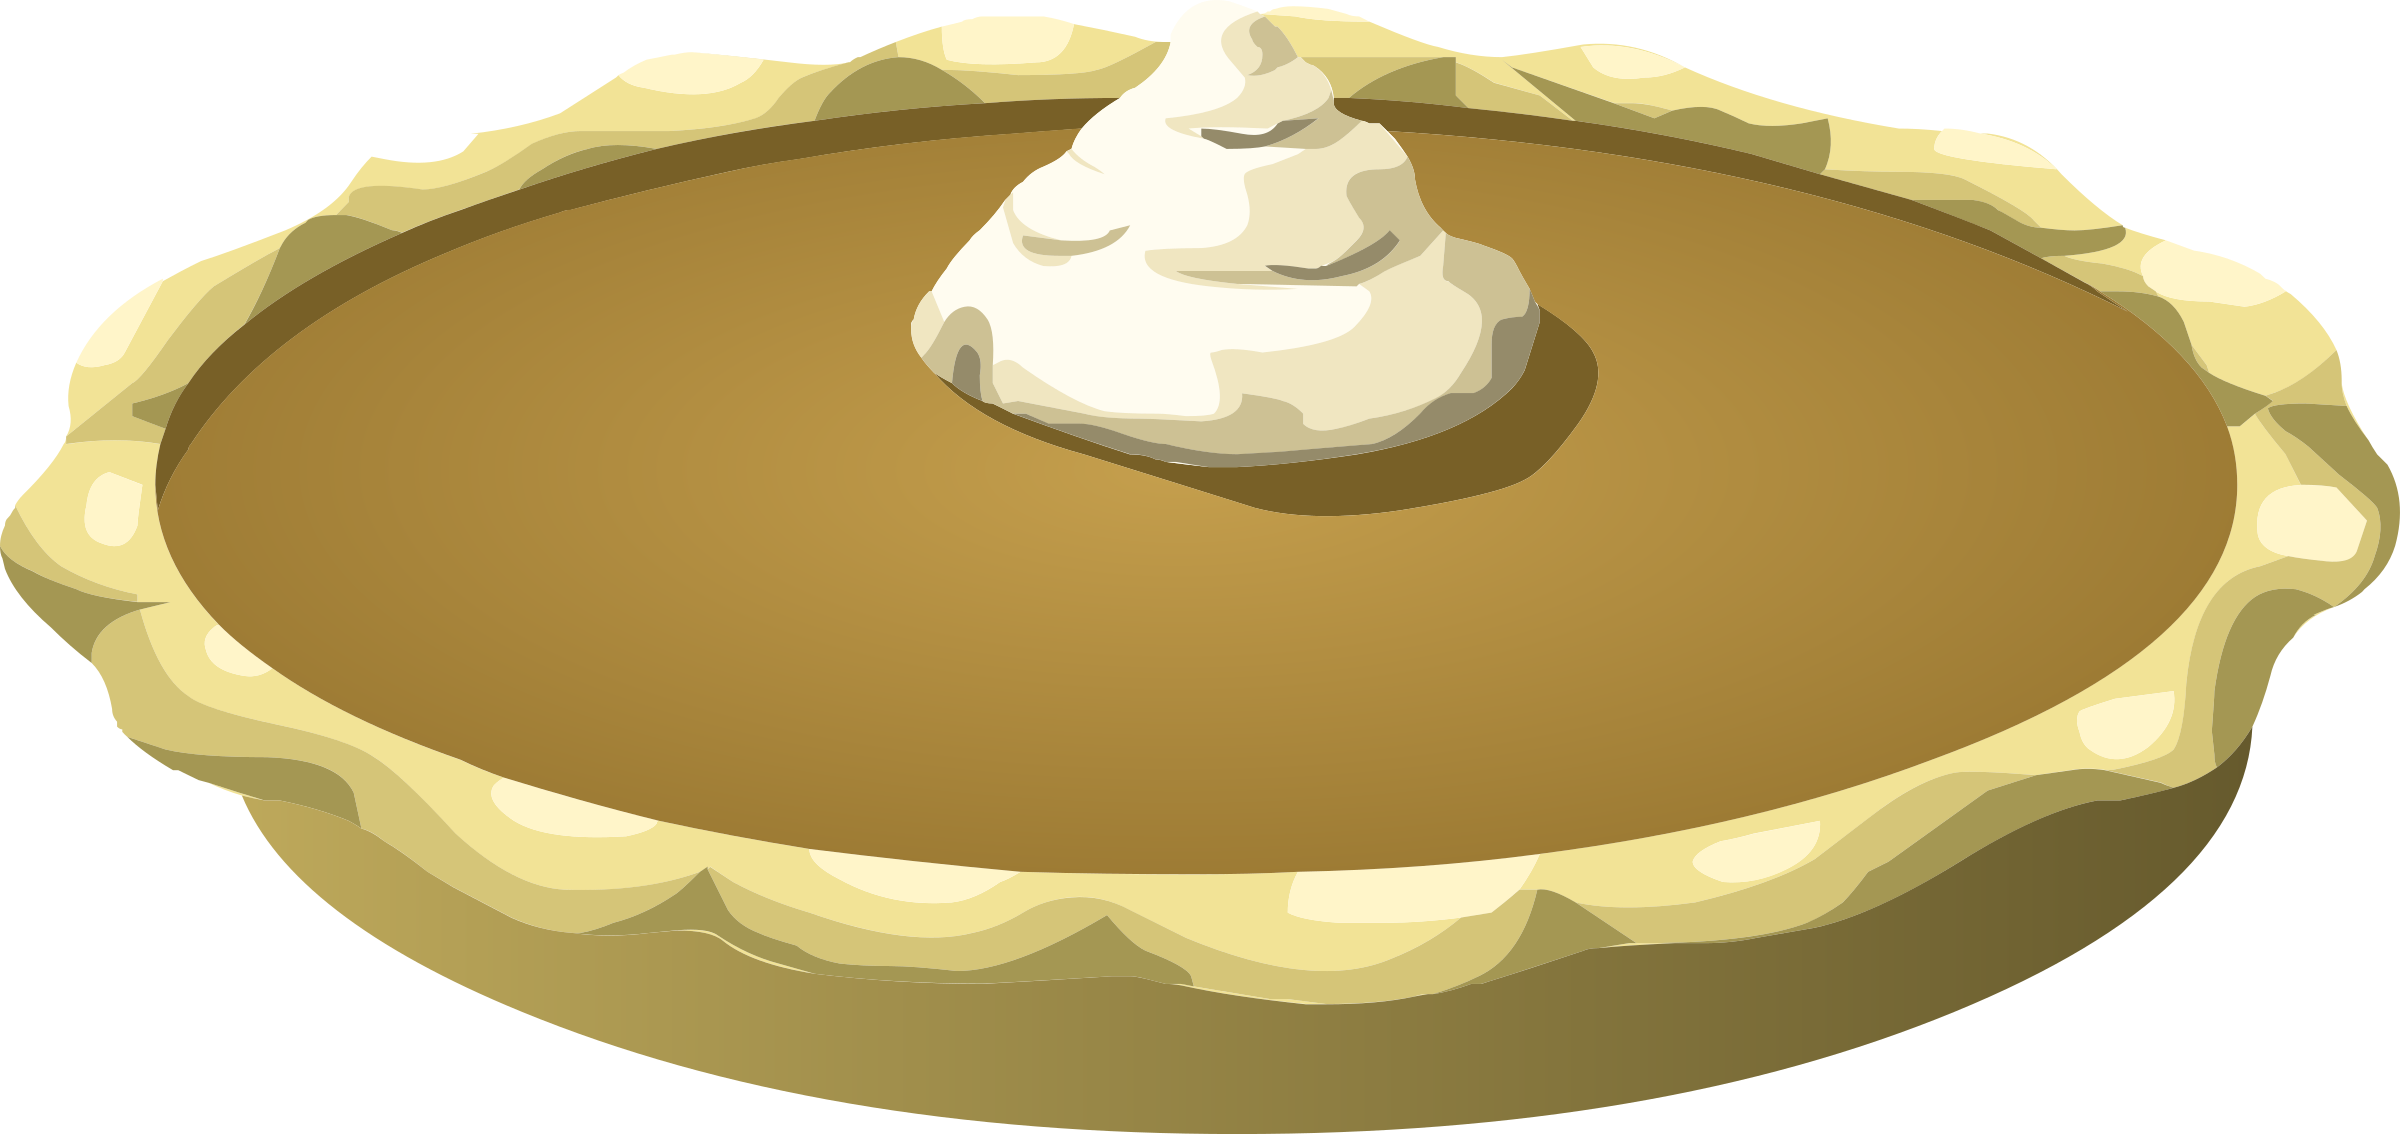 Baking pumpkin pie clipart.